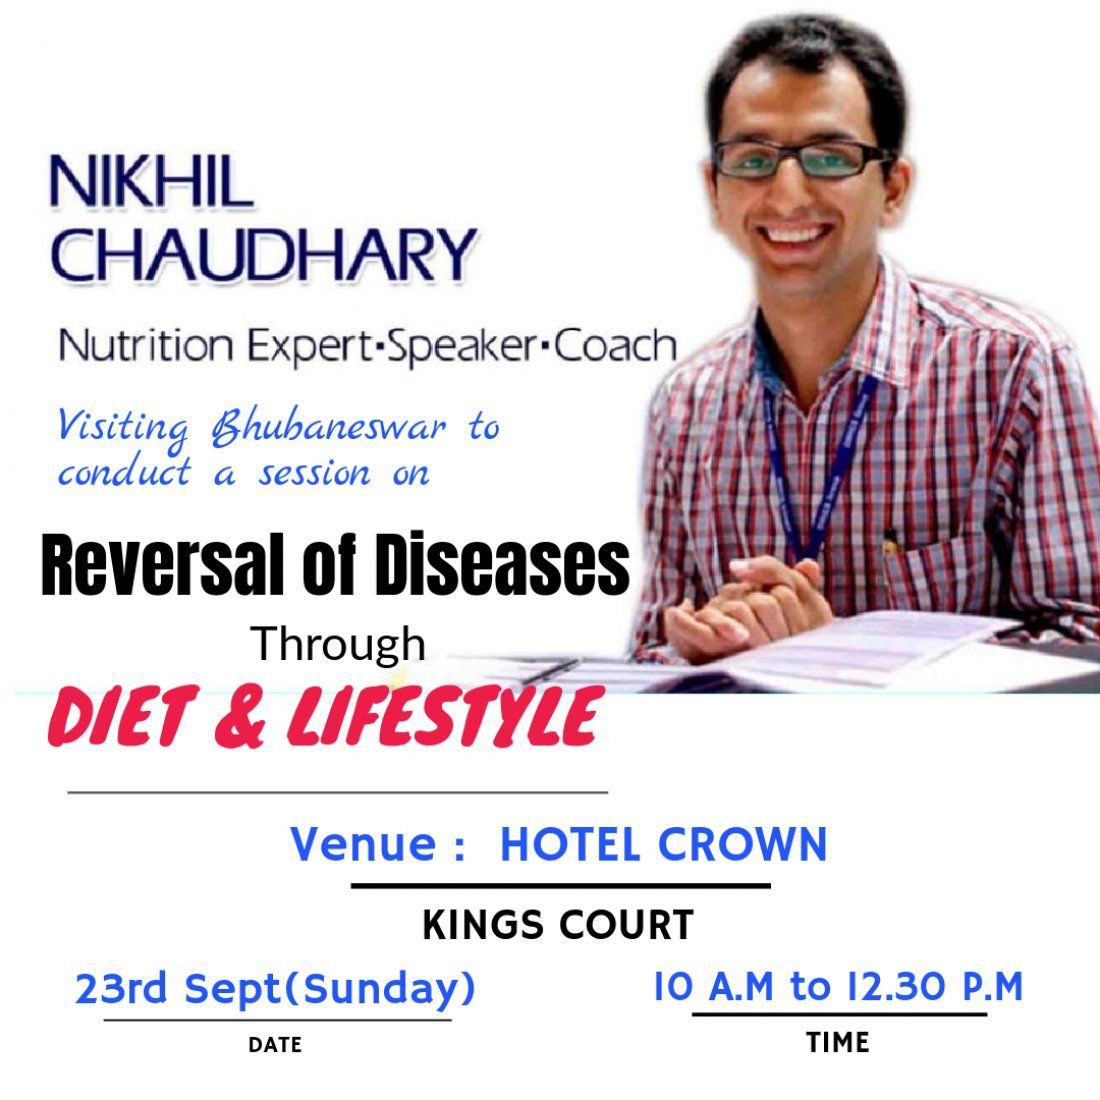 Reversal of diseases by diet and lifestyle by Nikhil Chaudhary